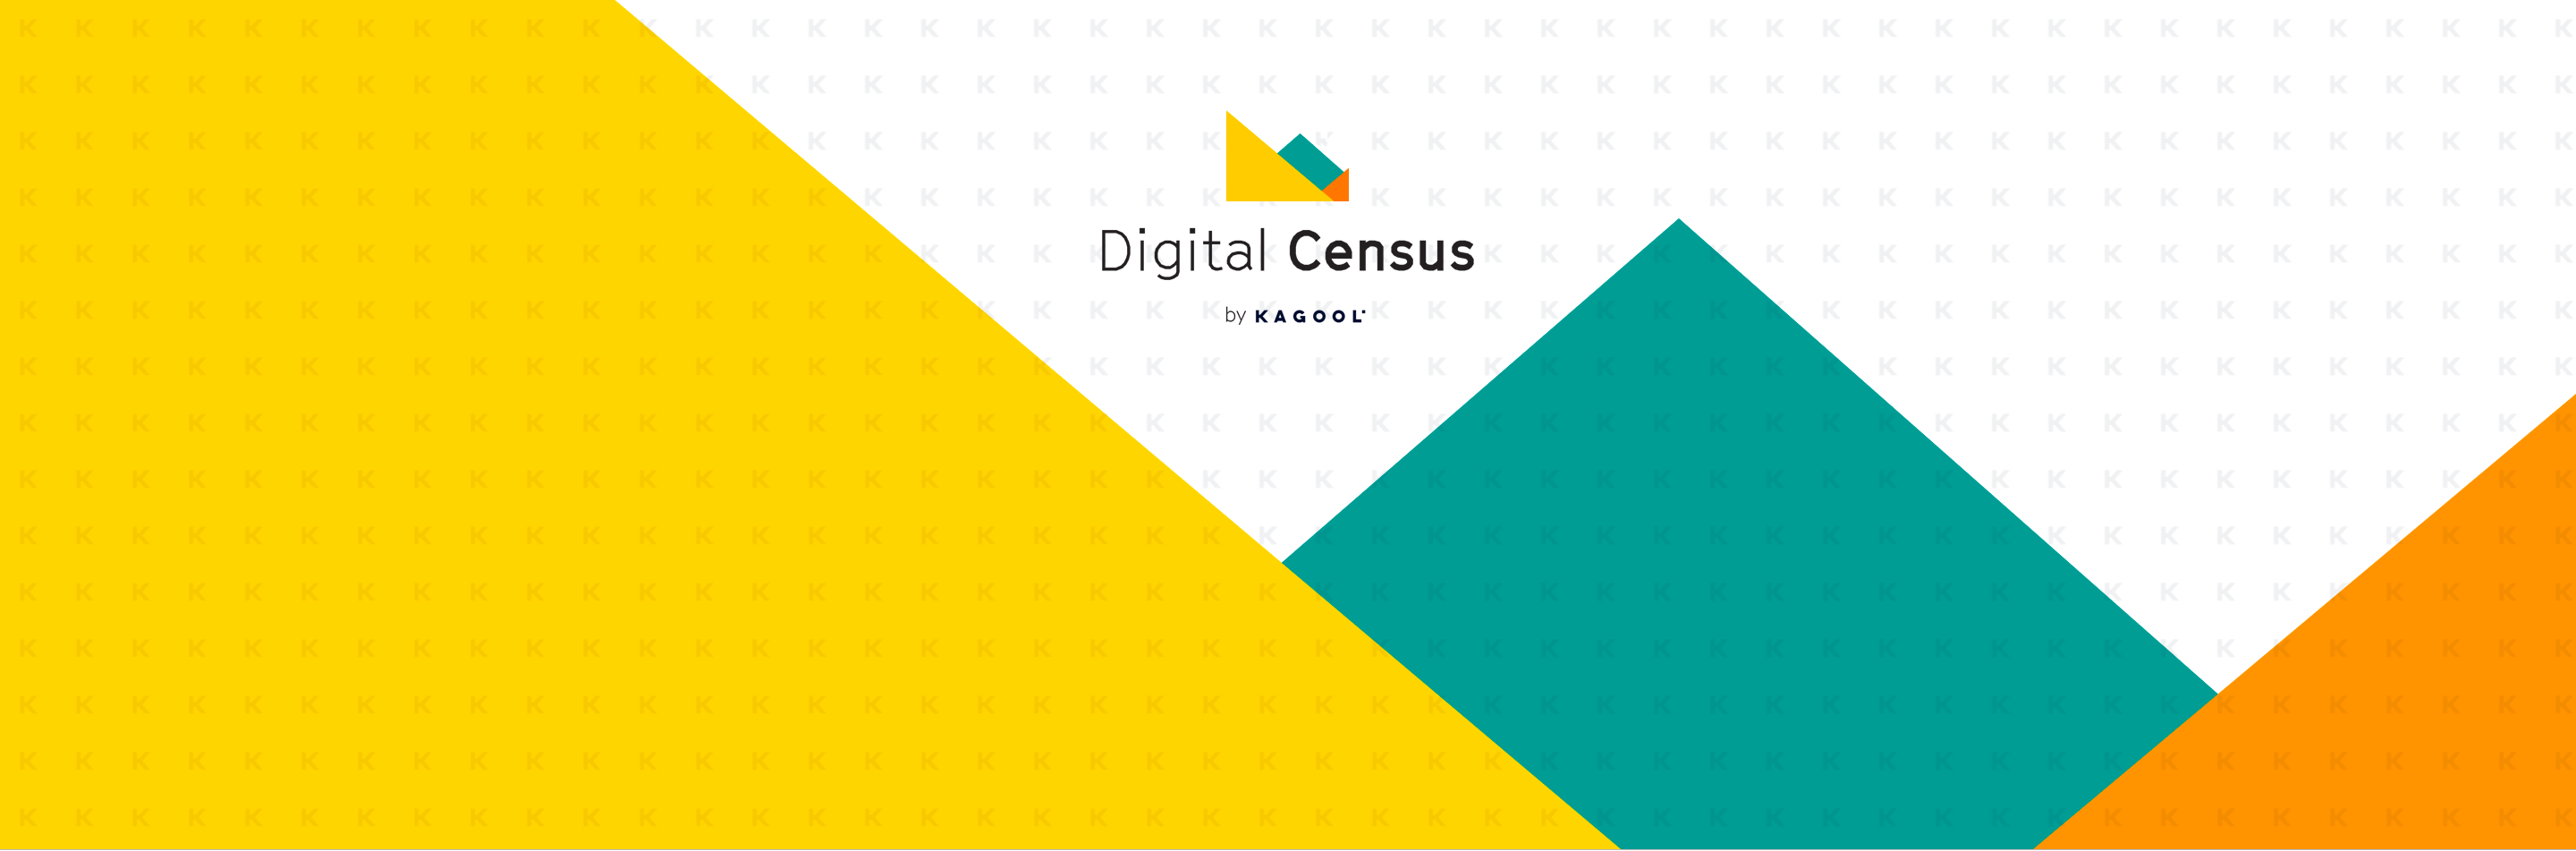 digital-census-hub-header